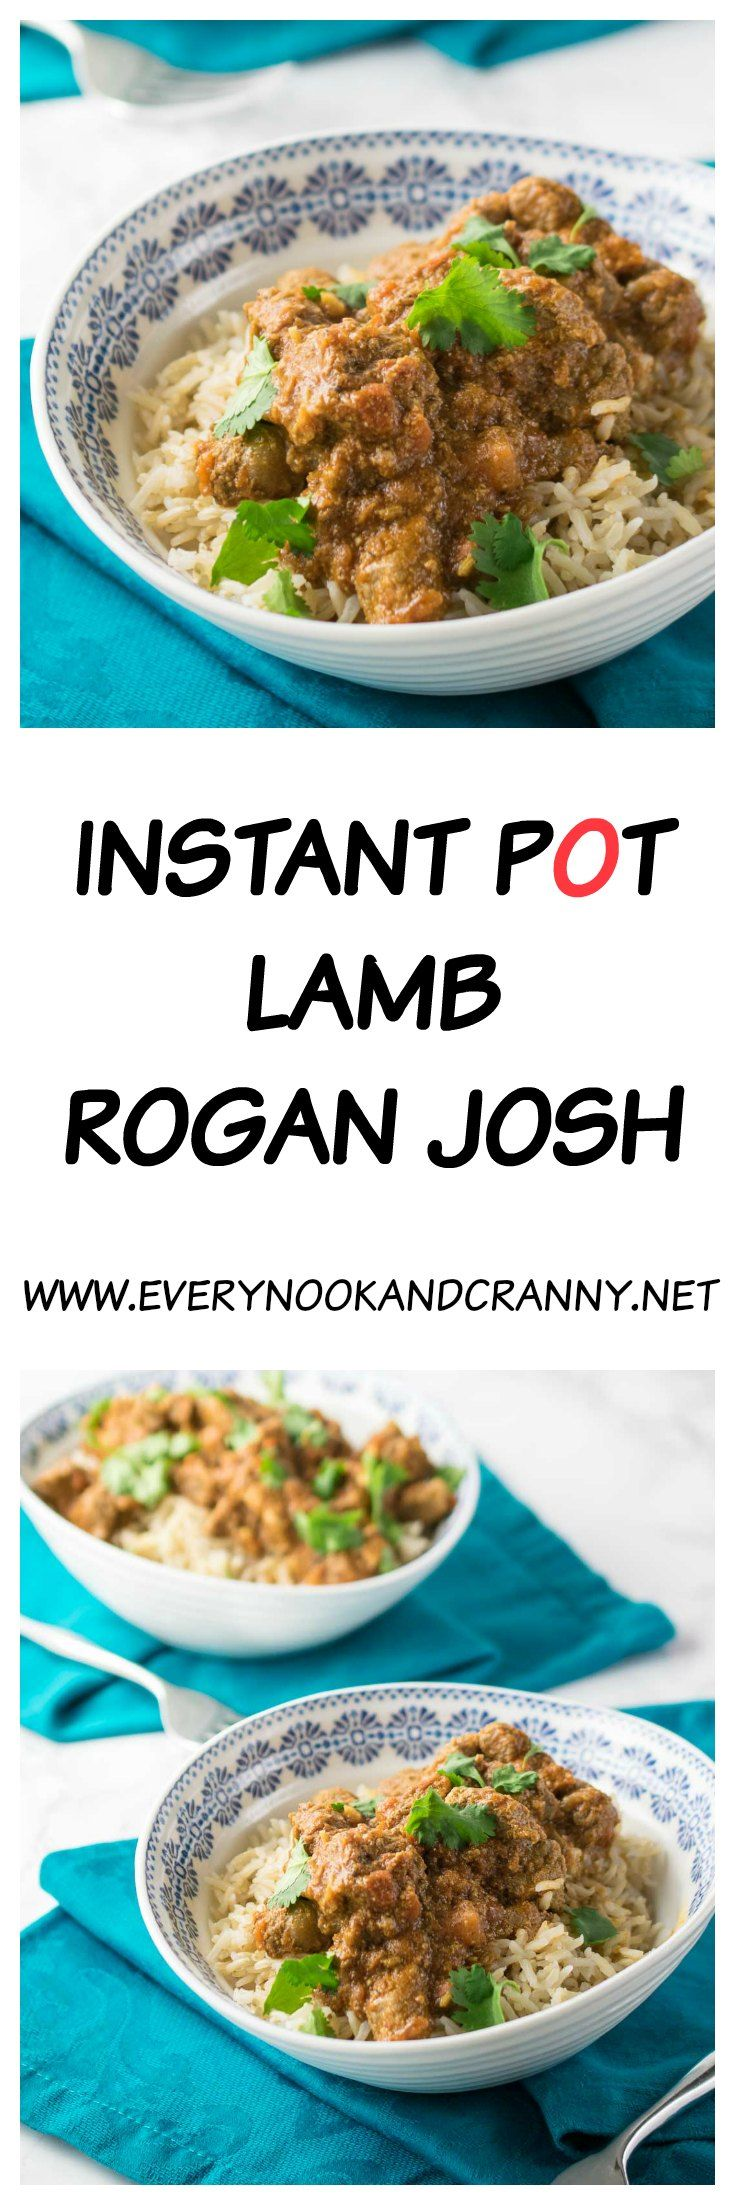 Instant Pot Lamb Rogan Josh - a rich tomato based lamb curry made all the better for pressure cooking it in the Instant Pot